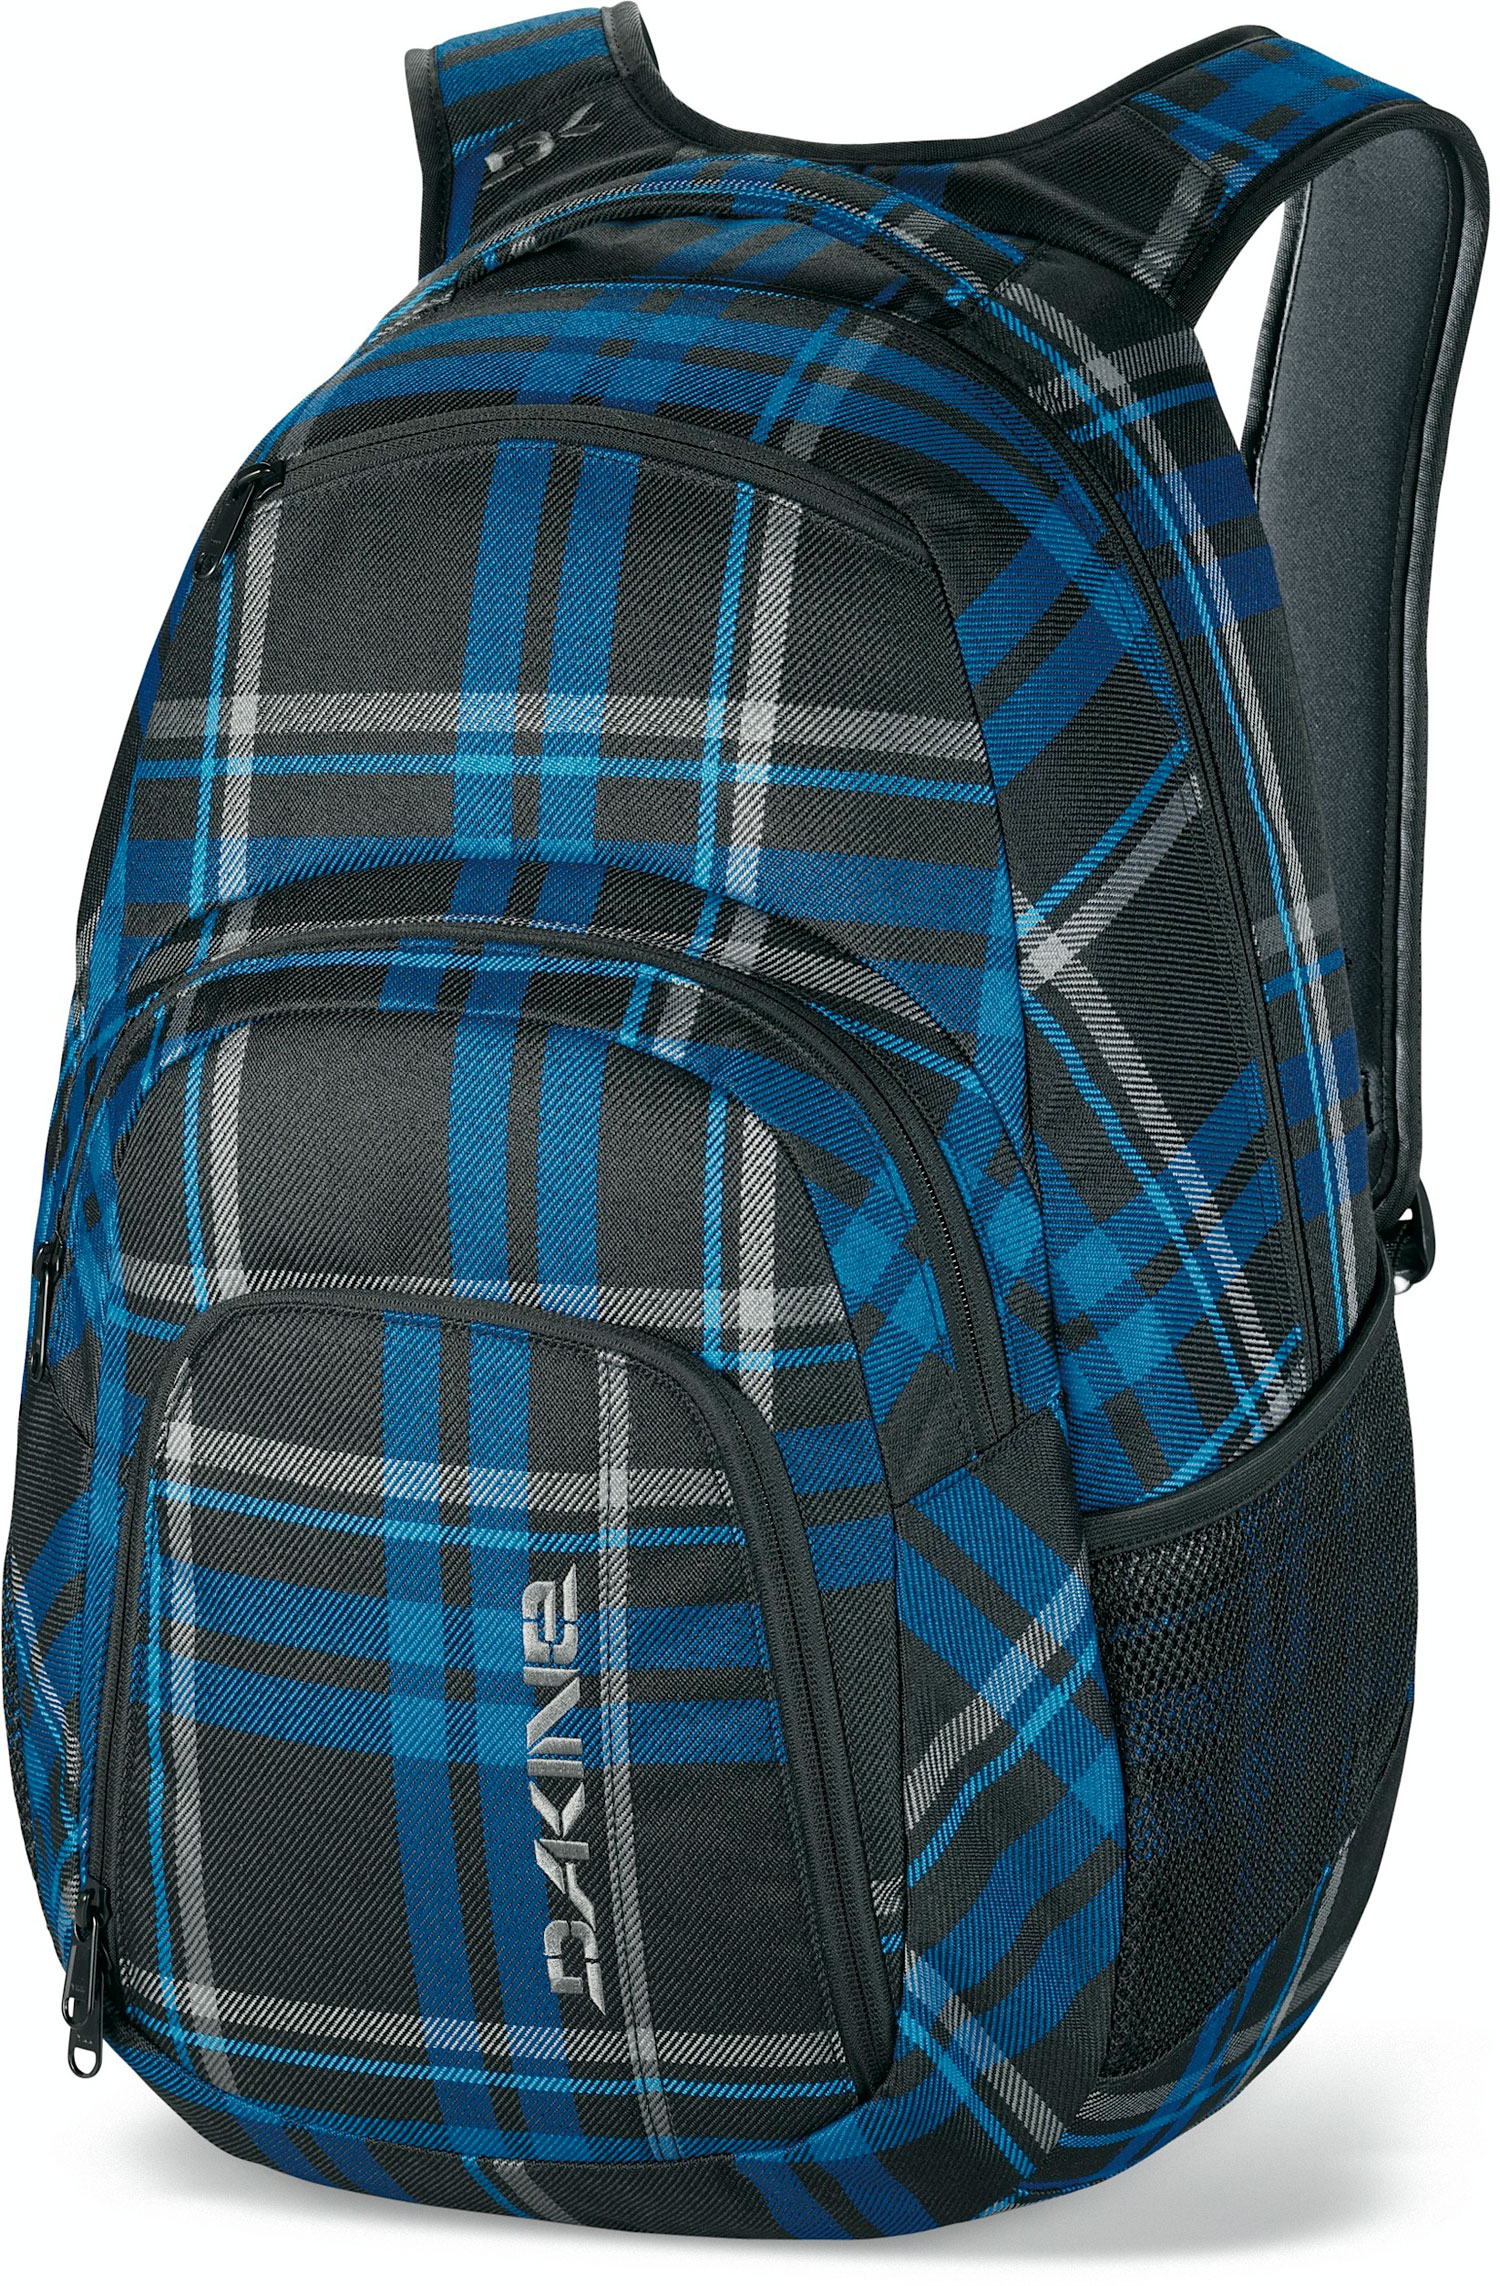 "Surf The ultimate in organization. Specific pockets for your laptop, electronics and music, the Campus keeps your essentials easily accessible and well protected.Key Features of the Dakine Campus 33L Backpack: 2000 cu. in. [ 33L ] 20 x 13 x 9"" [ 51 x 33 x 23cm ] 600D Polyester 420D Nylon Dobby ( Black ) Padded sleeve fits most 15"" laptops Insulated cooler pocket Organizer pocket Fleece lined sunglass pocket Mesh side pockets - $38.95"